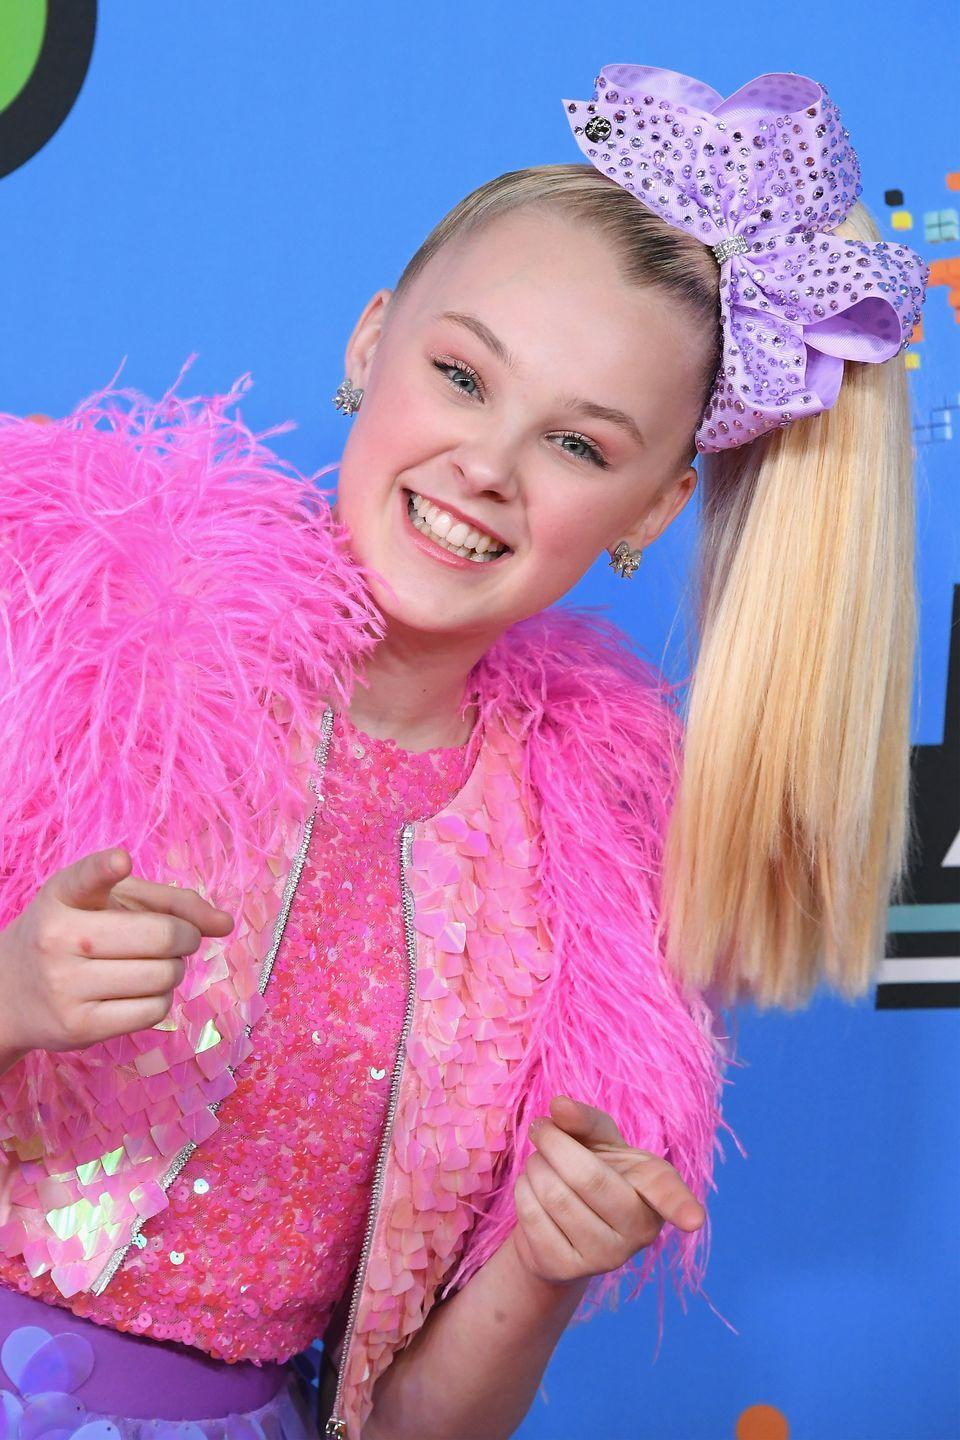 "<p><strong>Real name:</strong> <a href=""https://people.com/music/jojo-siwa-career-in-photos"" rel=""nofollow noopener"" target=""_blank"" data-ylk=""slk:Joelle Joanie Siwa"" class=""link rapid-noclick-resp"">Joelle Joanie Siwa</a></p><p><em>People</em> reported what JoJo's real name is, which would explain where the nickname ""JoJo"" came from.</p>"